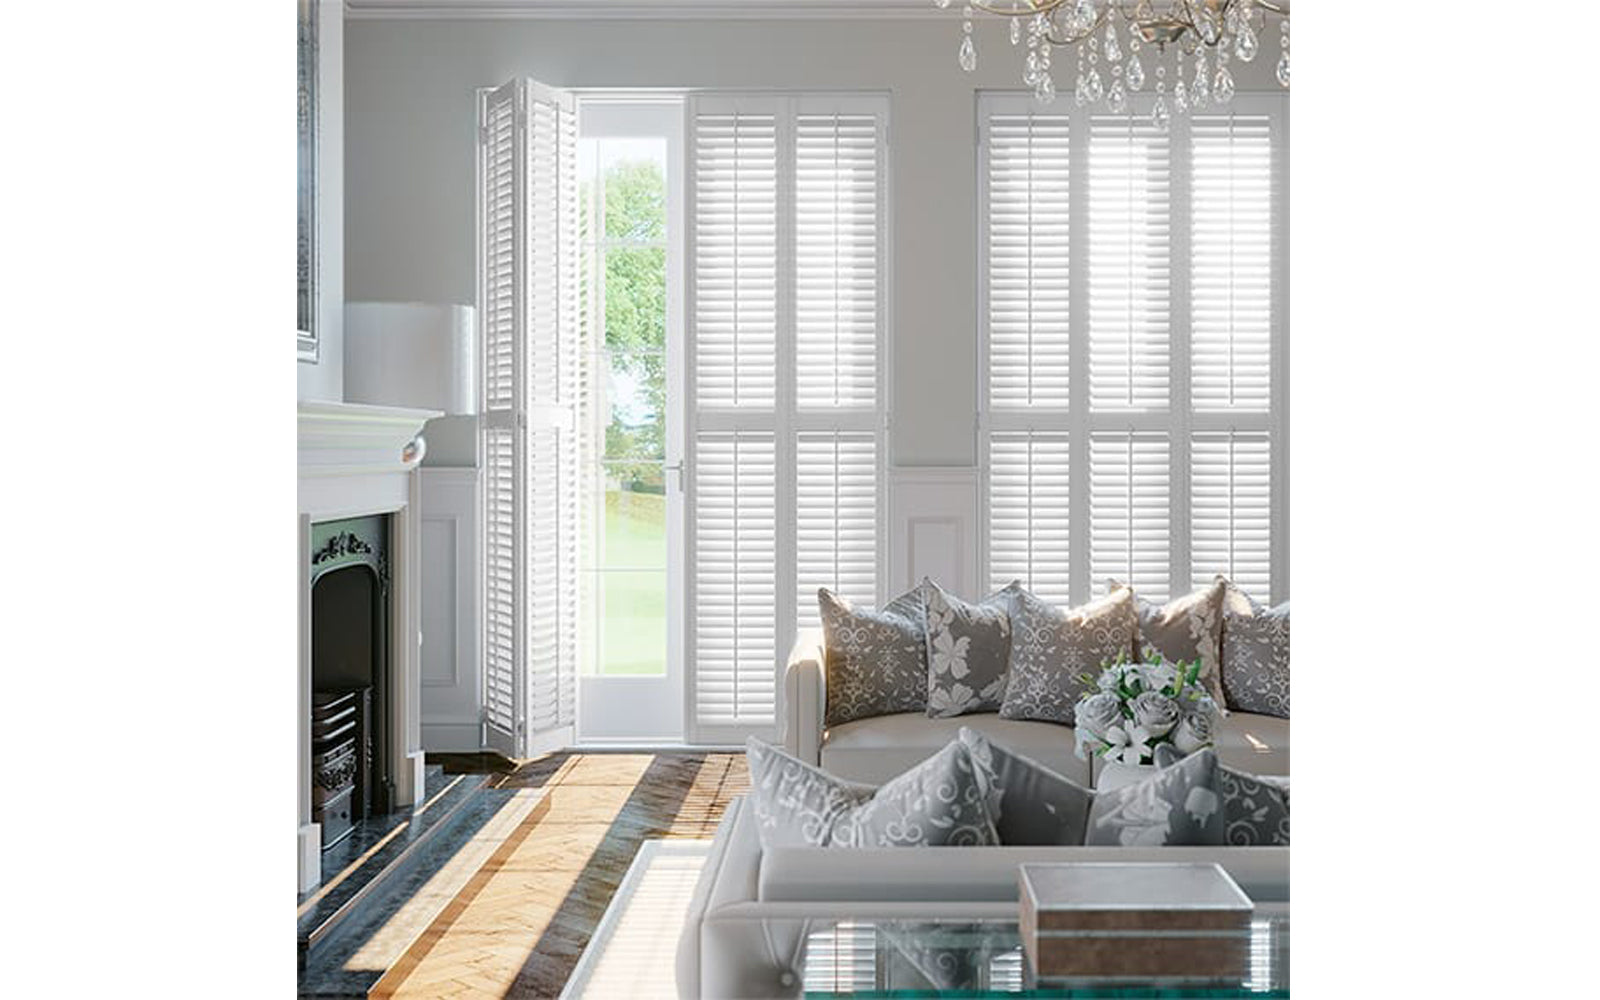 Full Height Wooden Shutters from Paul Christian Bristol